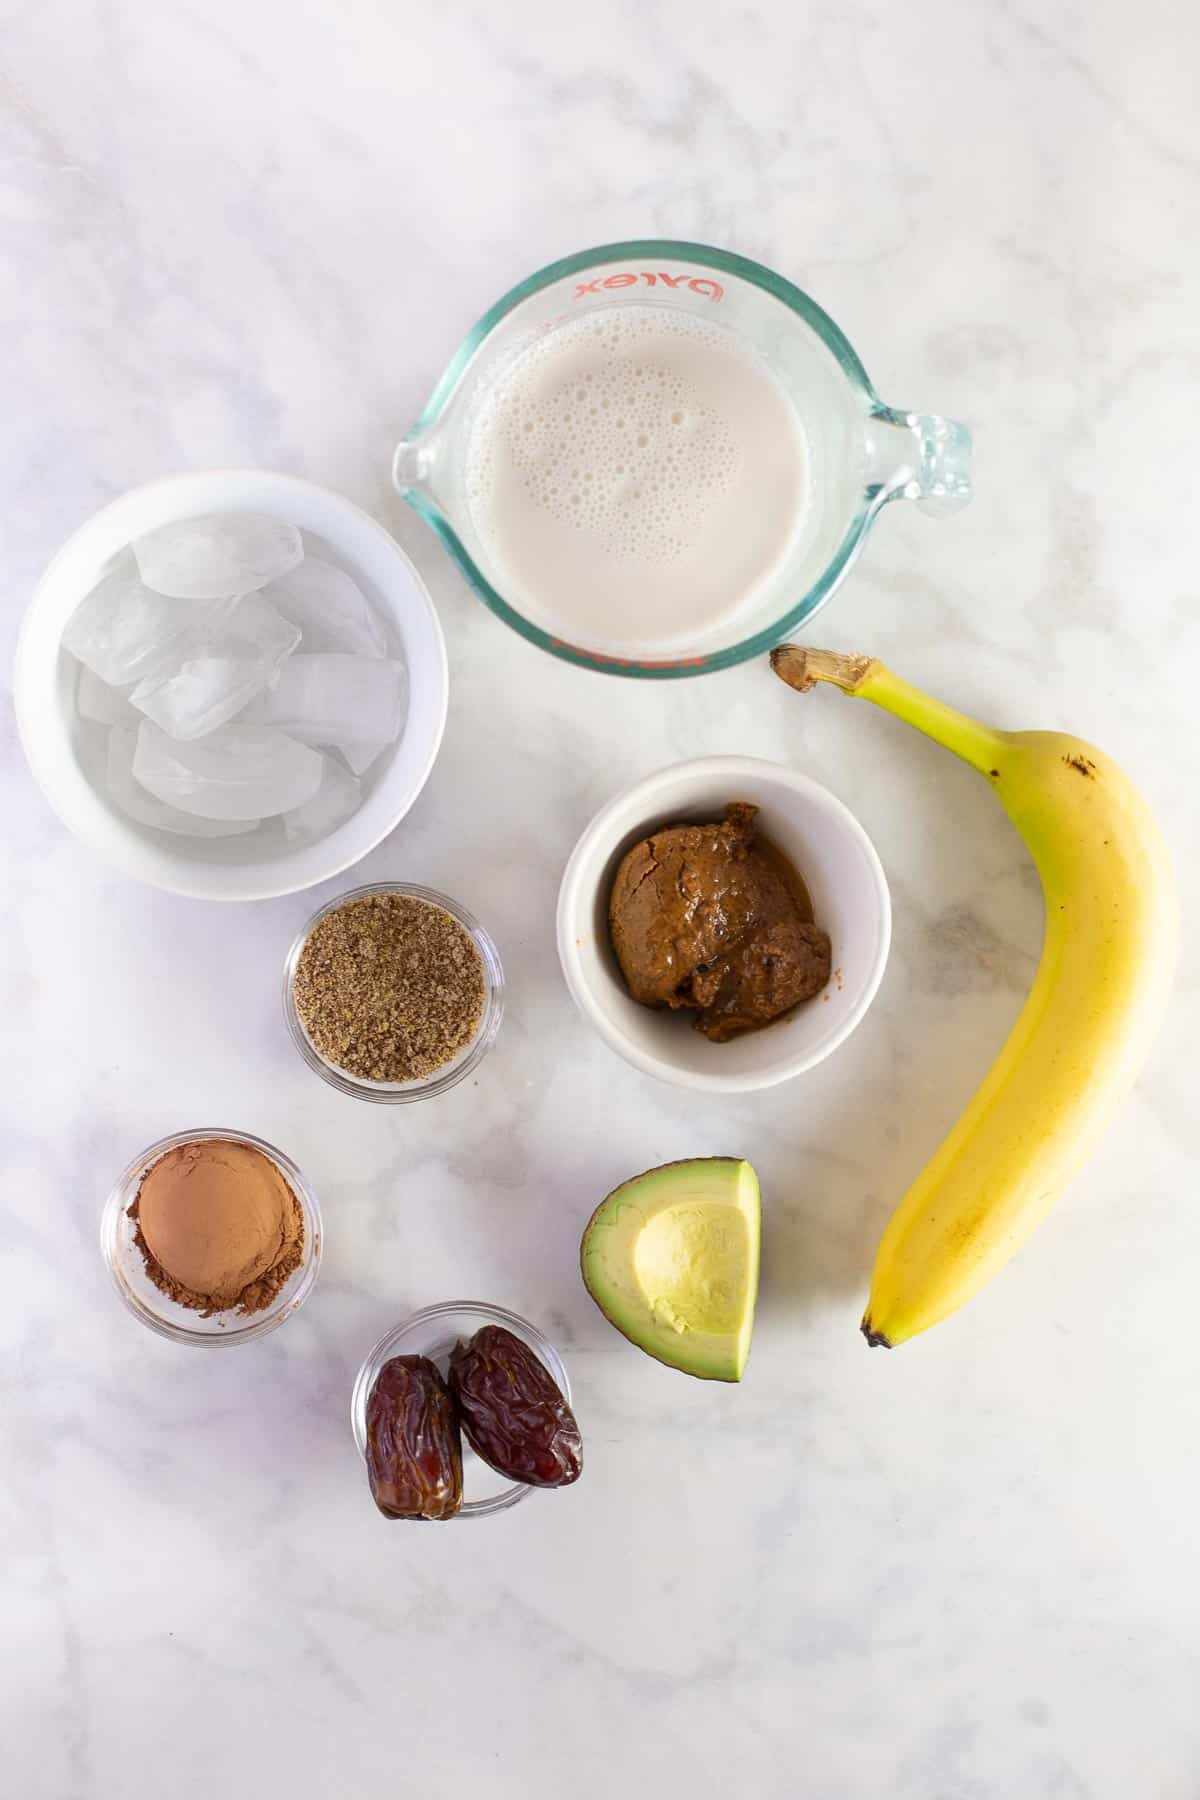 ingredients needed to make a healthy breakfast drink with banana, chocolate and avocado